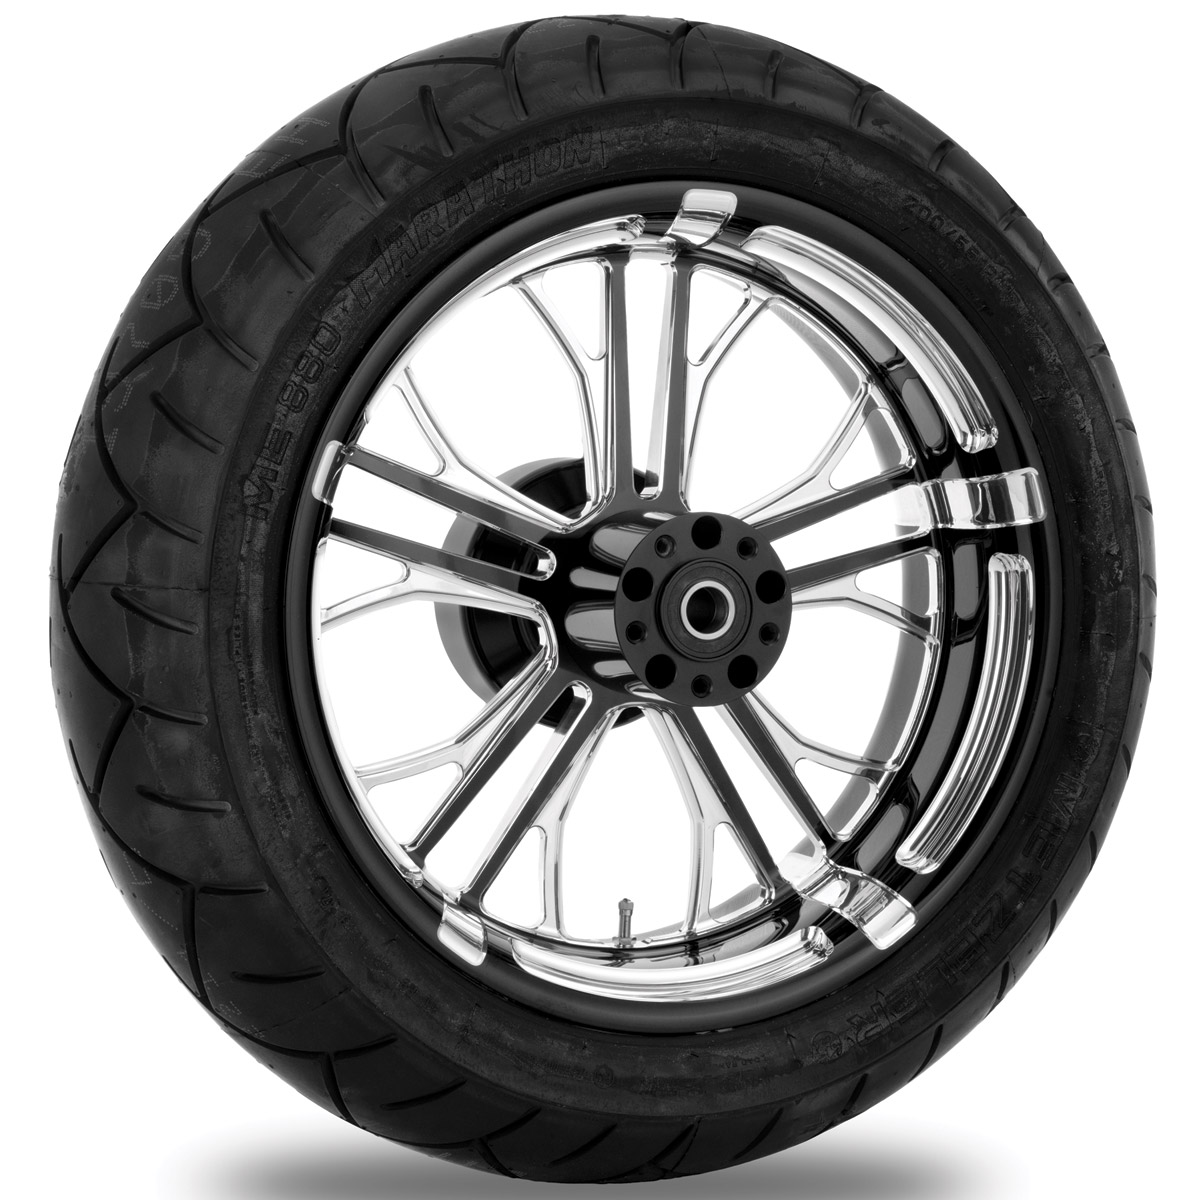 Performance Machine Dixon Contrast Cut Platinum Rear Wheel Package, 17″ x 6″ without ABS